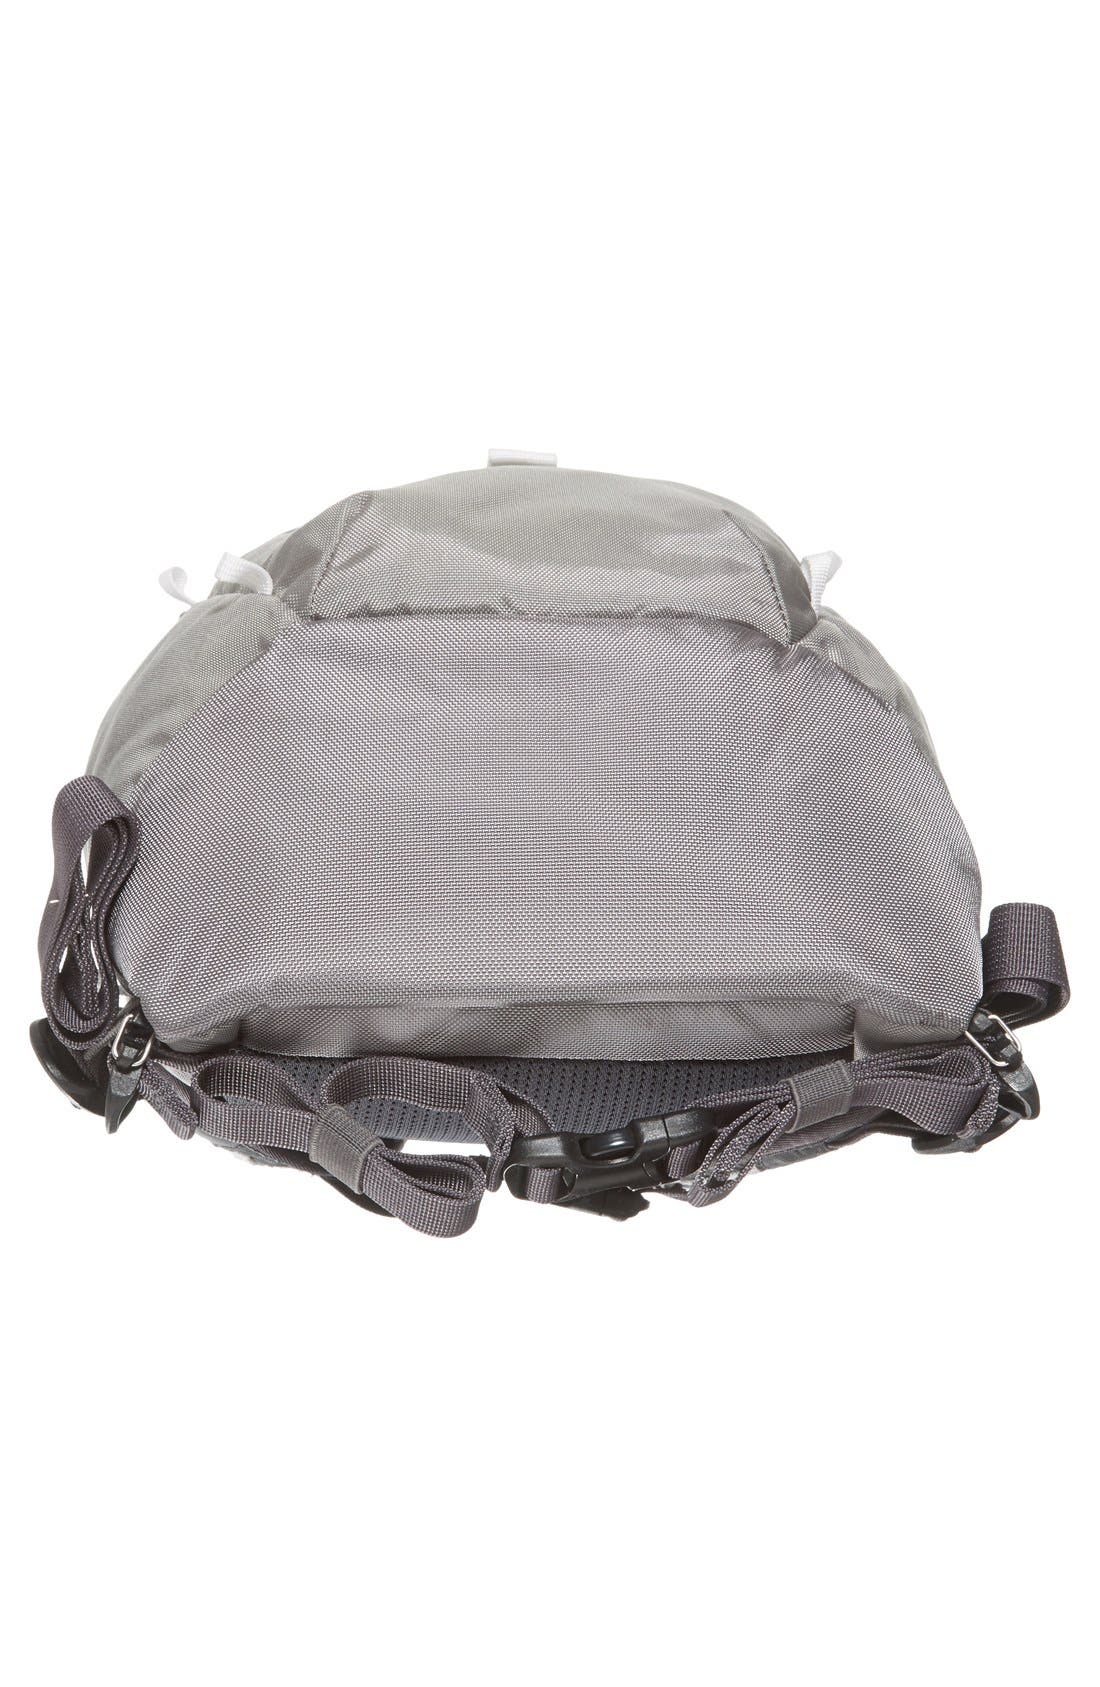 PATAGONIA,                             'Linked' Backpack,                             Alternate thumbnail 2, color,                             020